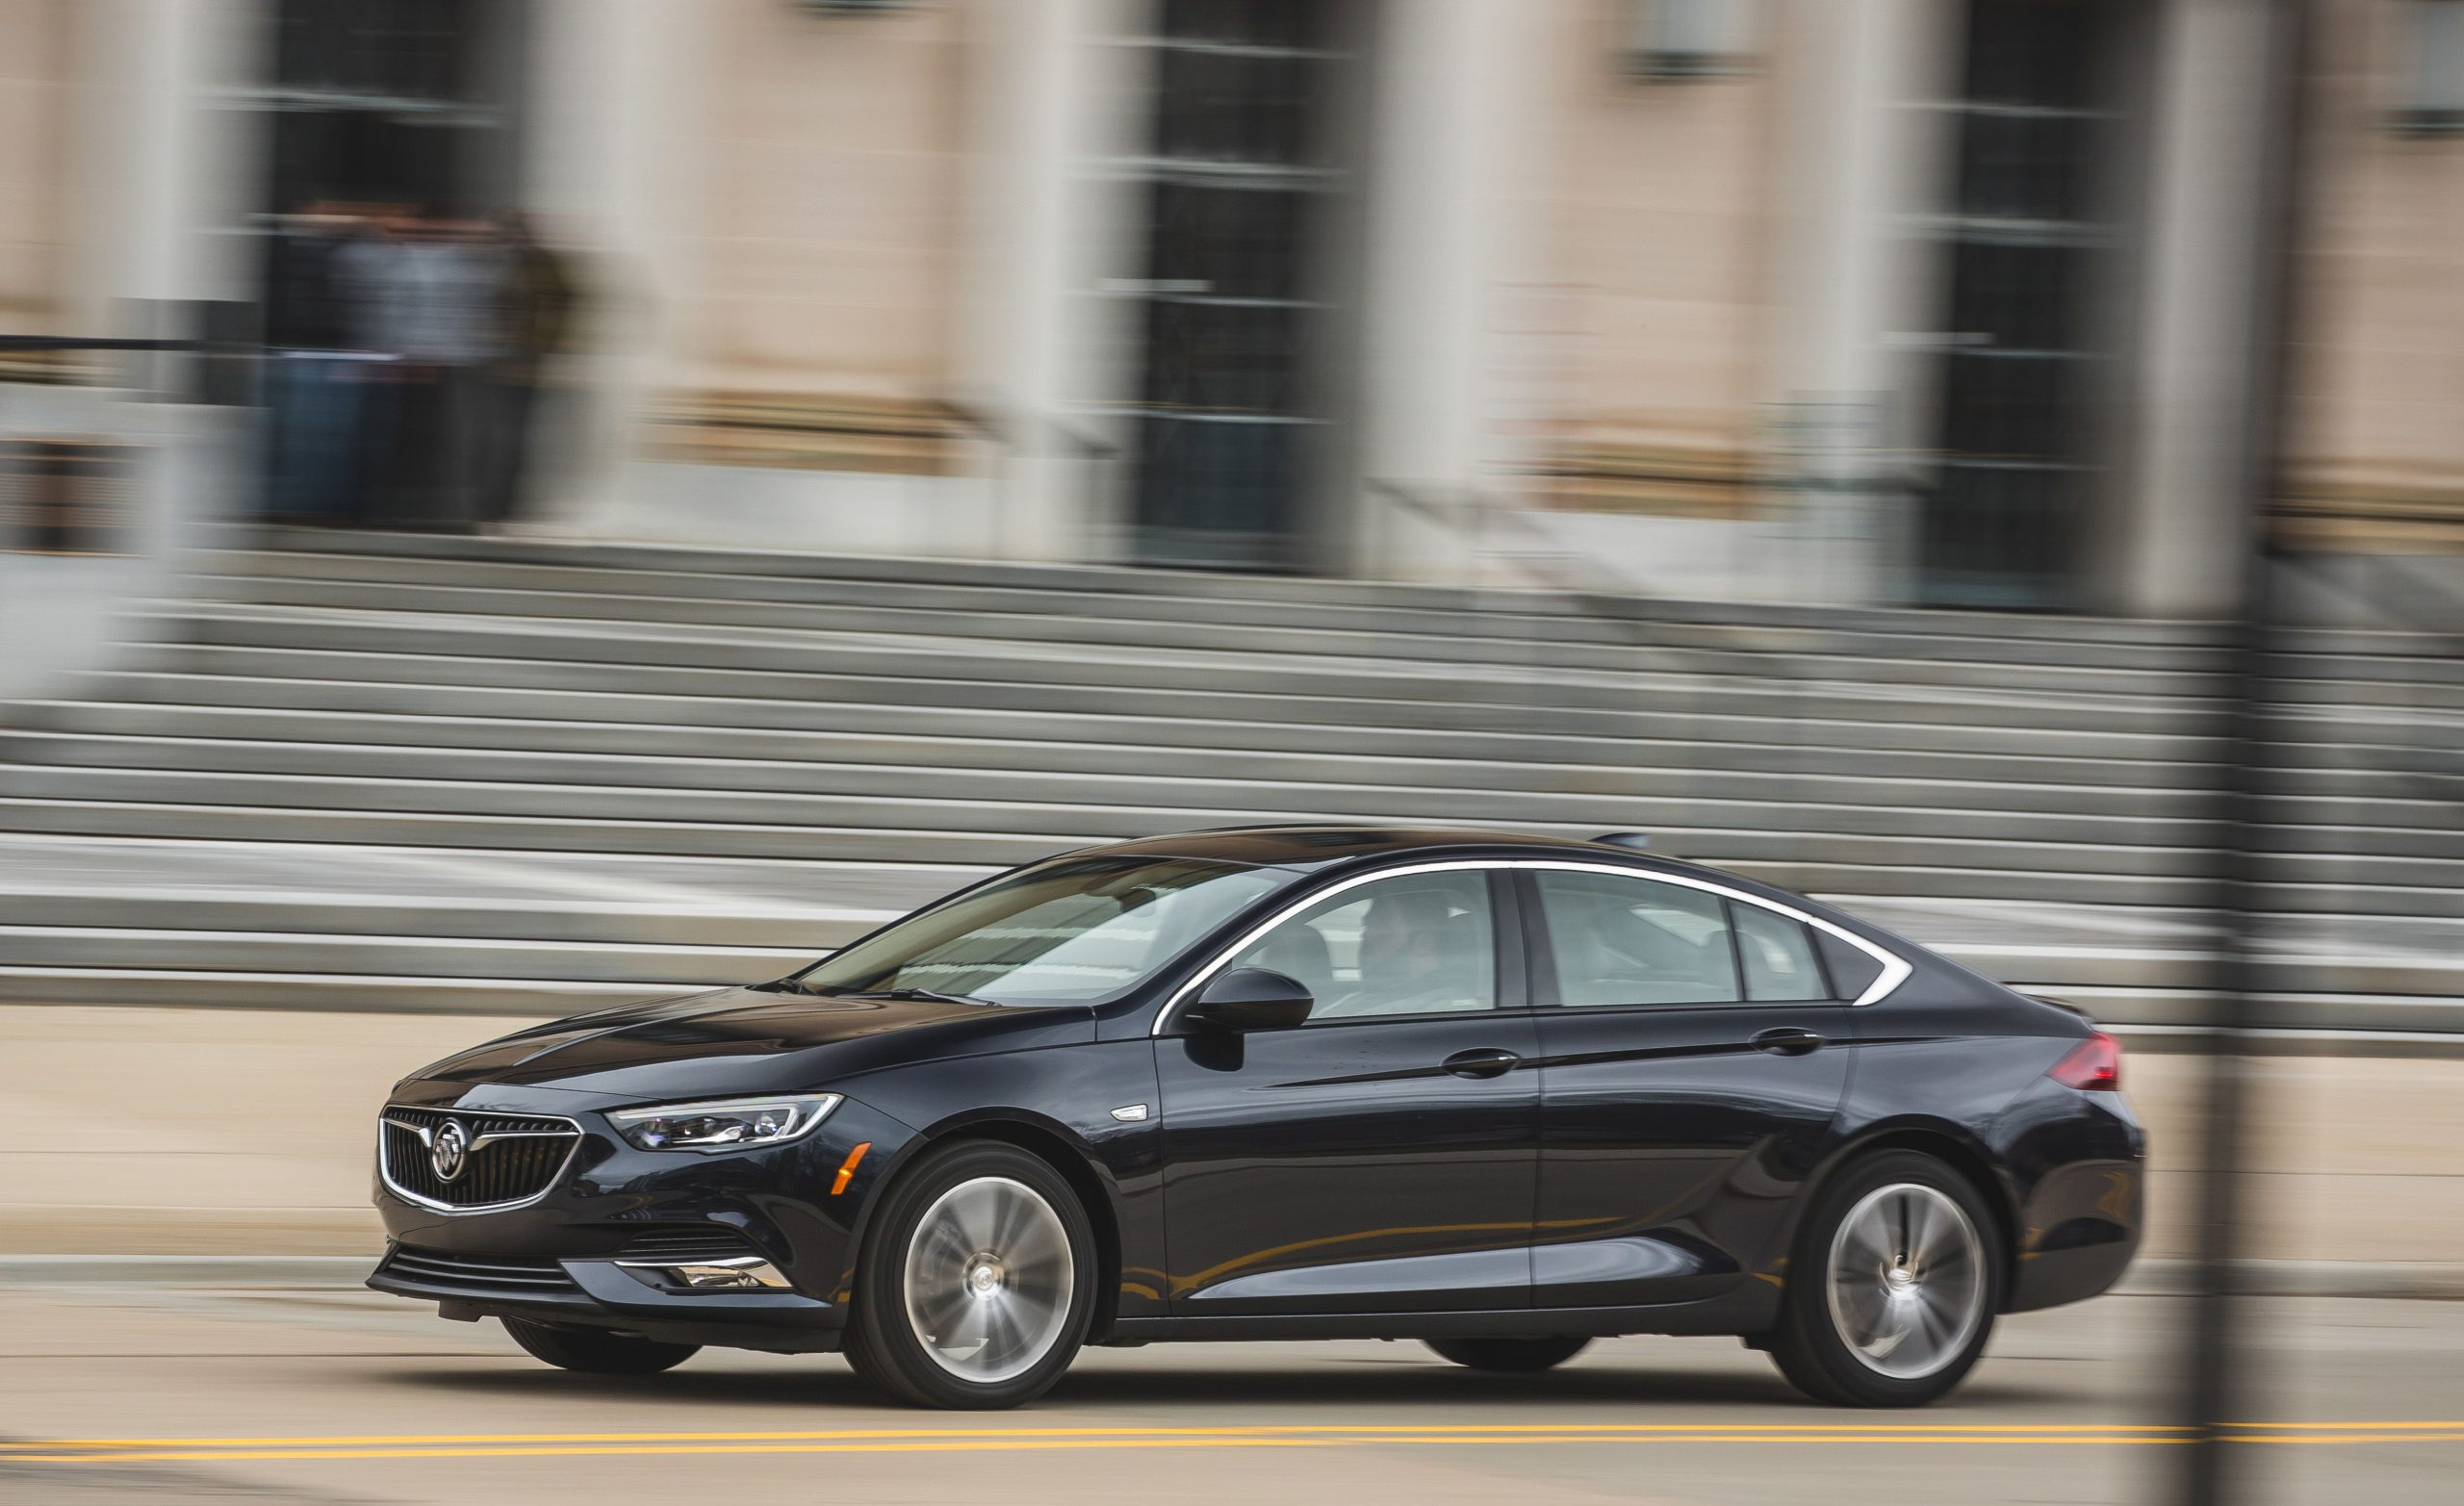 2019 Buick Regal Sportback Review, Pricing, And Specs New 2021 Buick Regal Sportback Specs, Used, 0-60